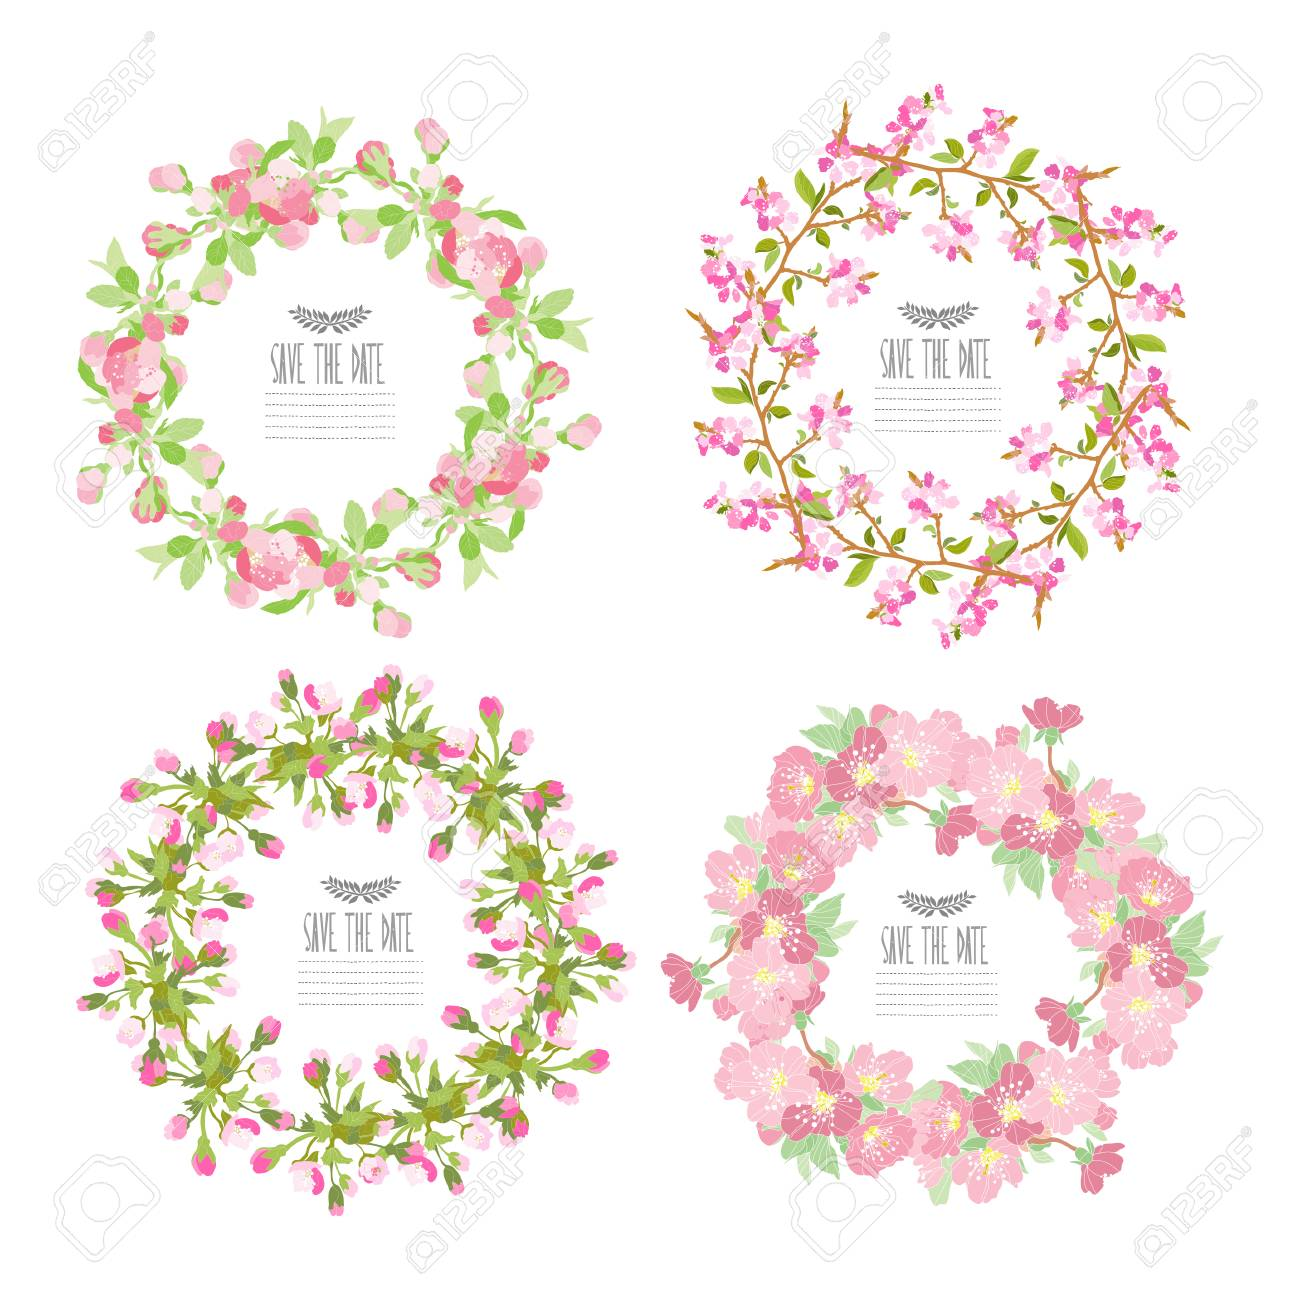 Elegant Wreaths With Decorative Cherry Blossom Flowers, Design ...